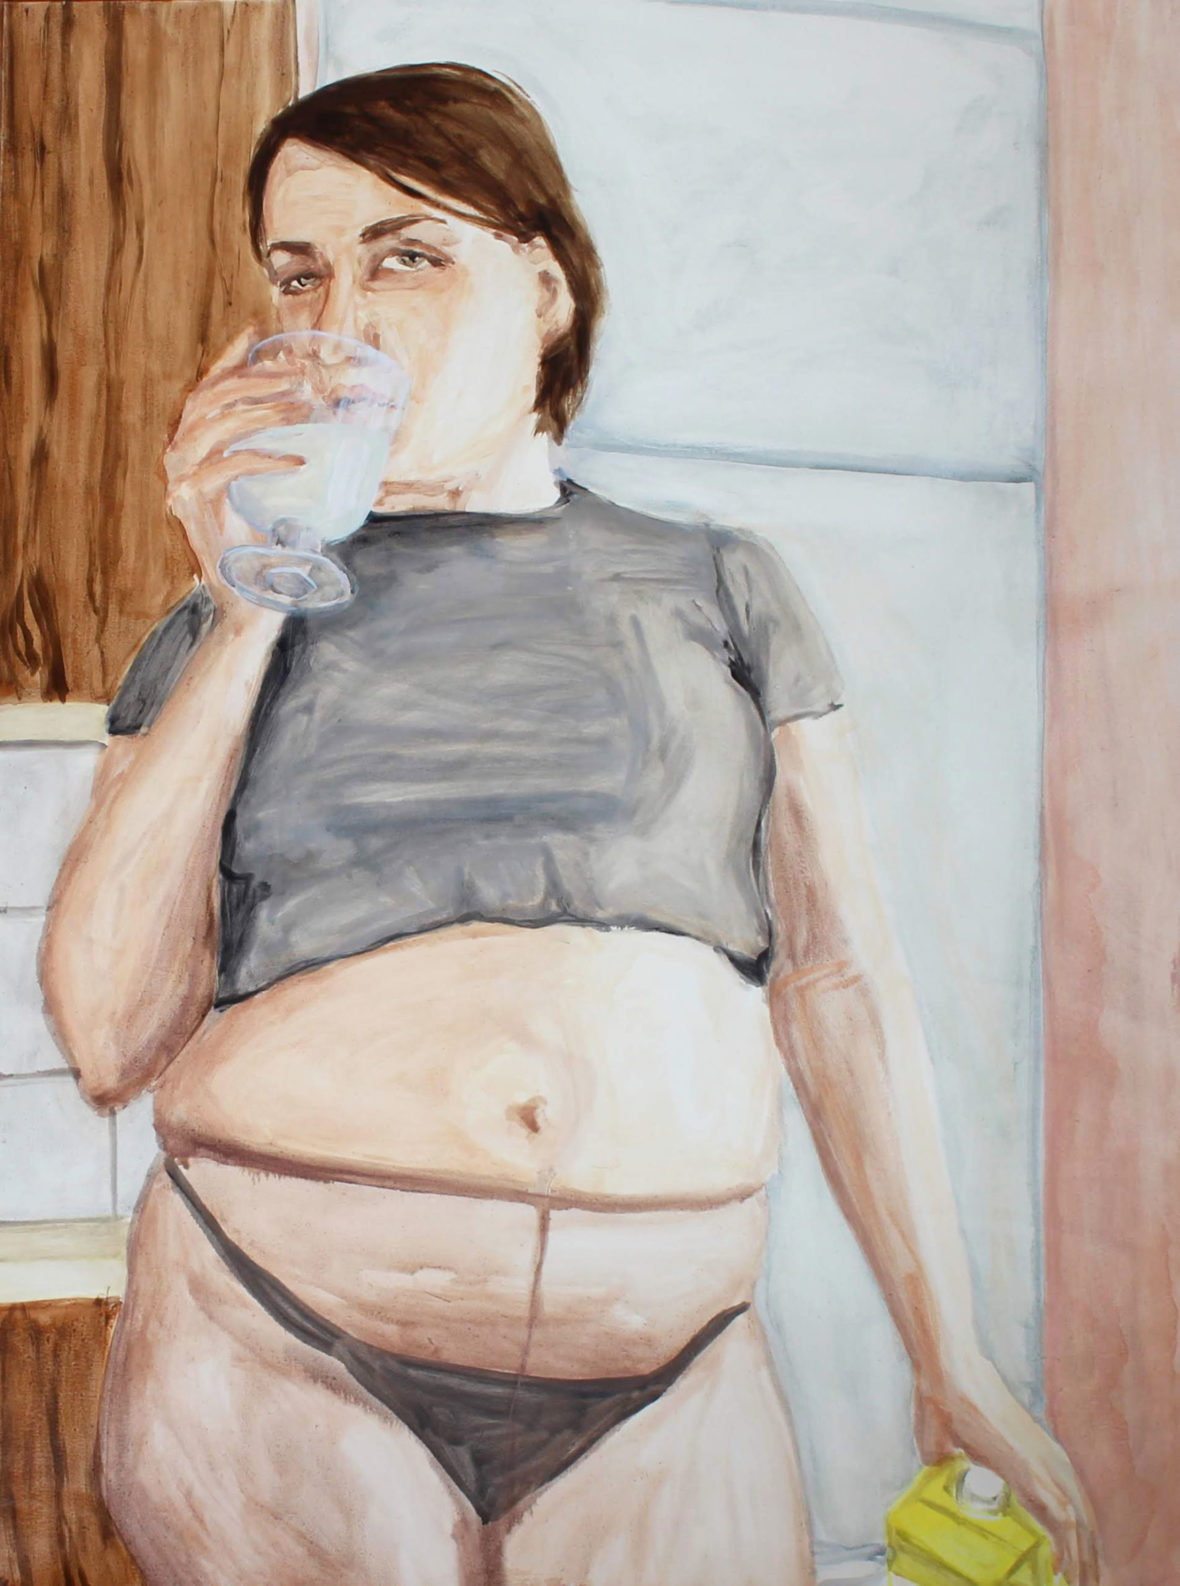 Self-portrait with a glass of (plant-based) milk